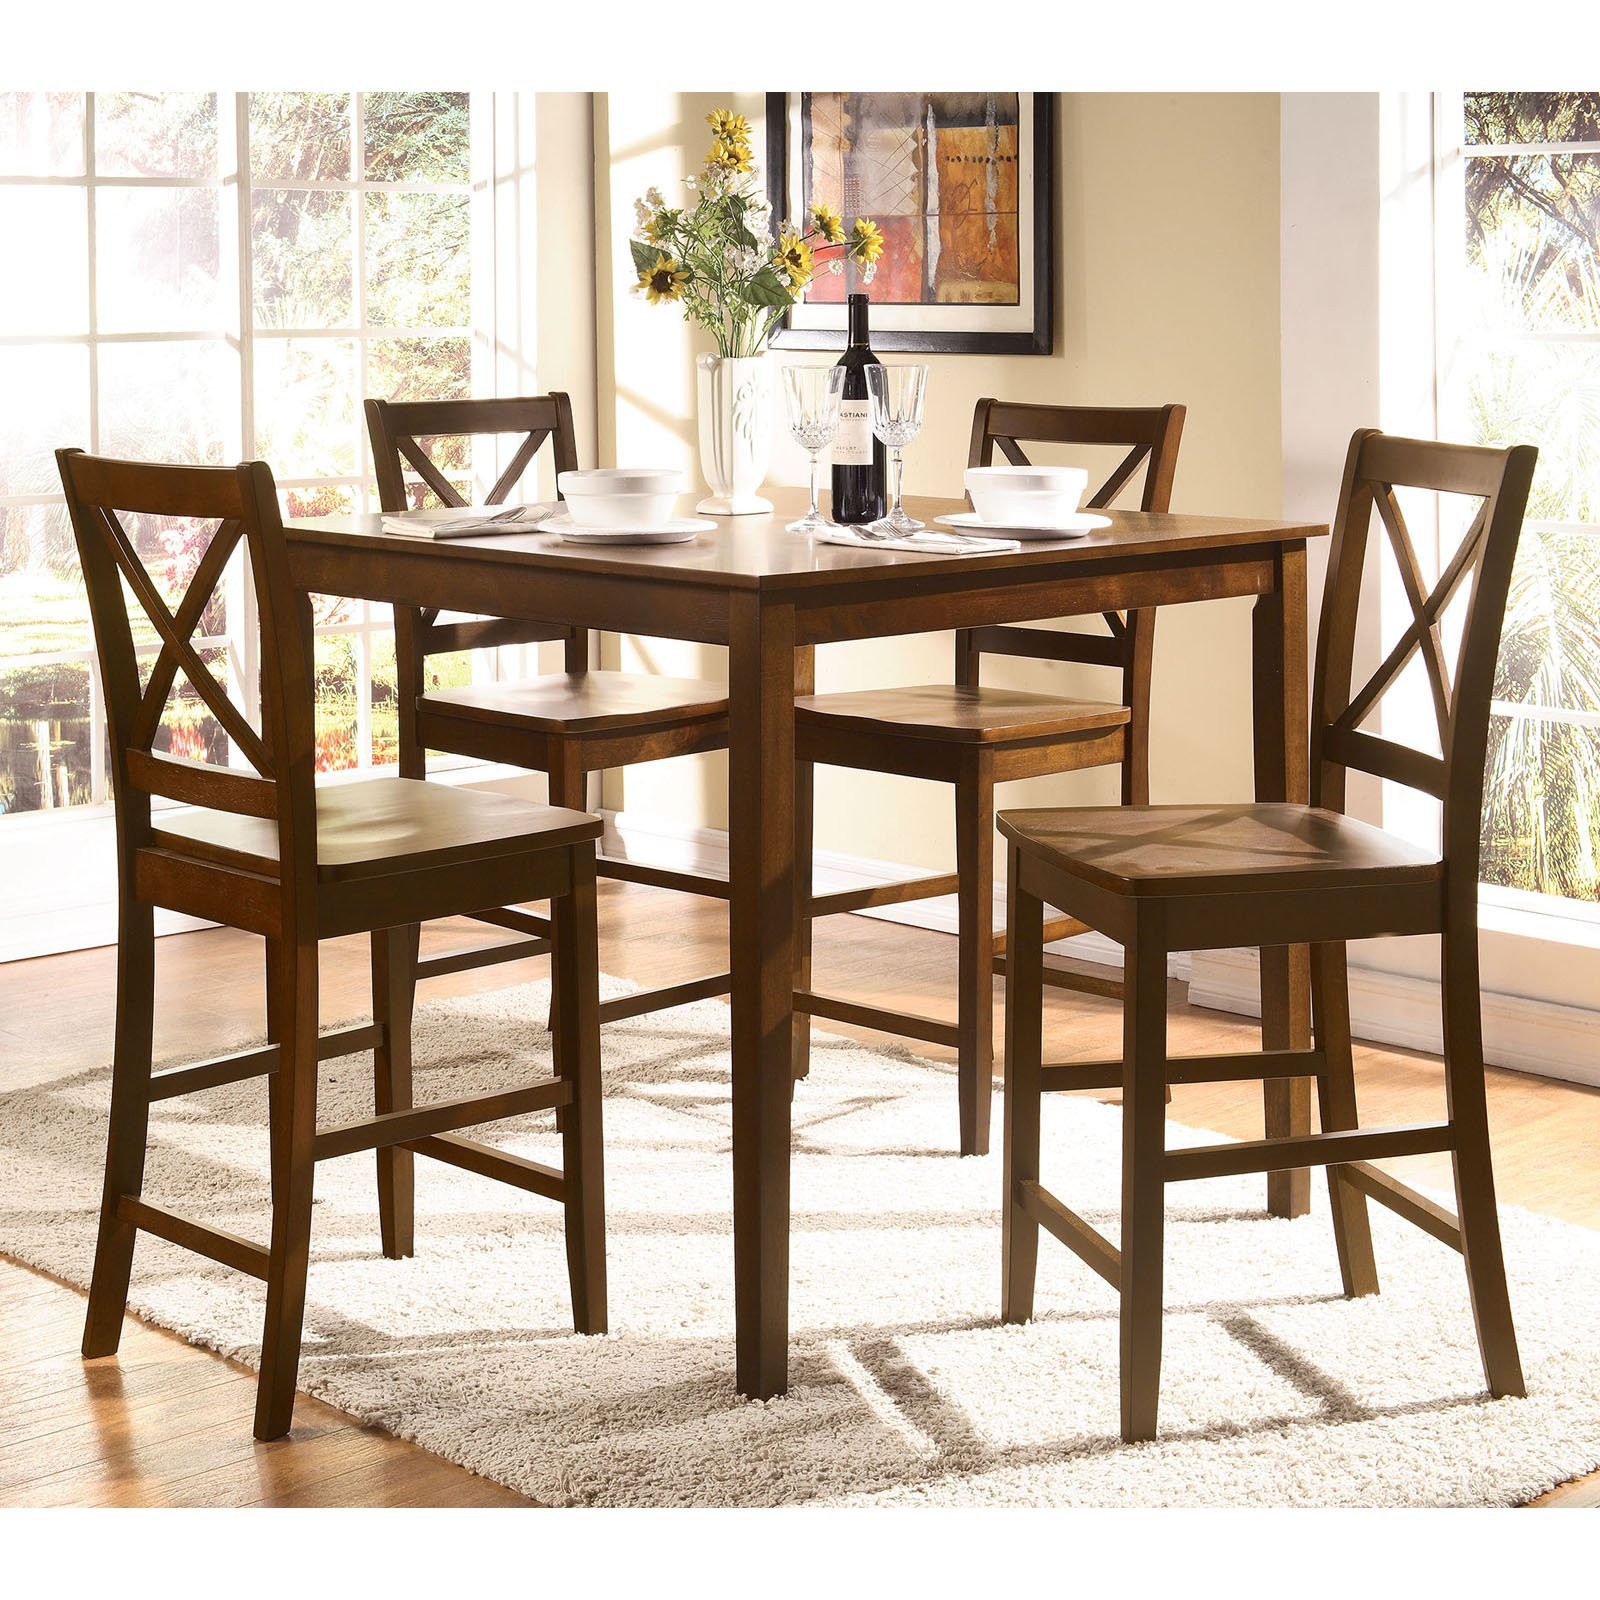 Standard Furniture Brooklyn 5 Piece Counter Height Dining: Acme Furniture Martha 5 Piece Counter Height Dining Table